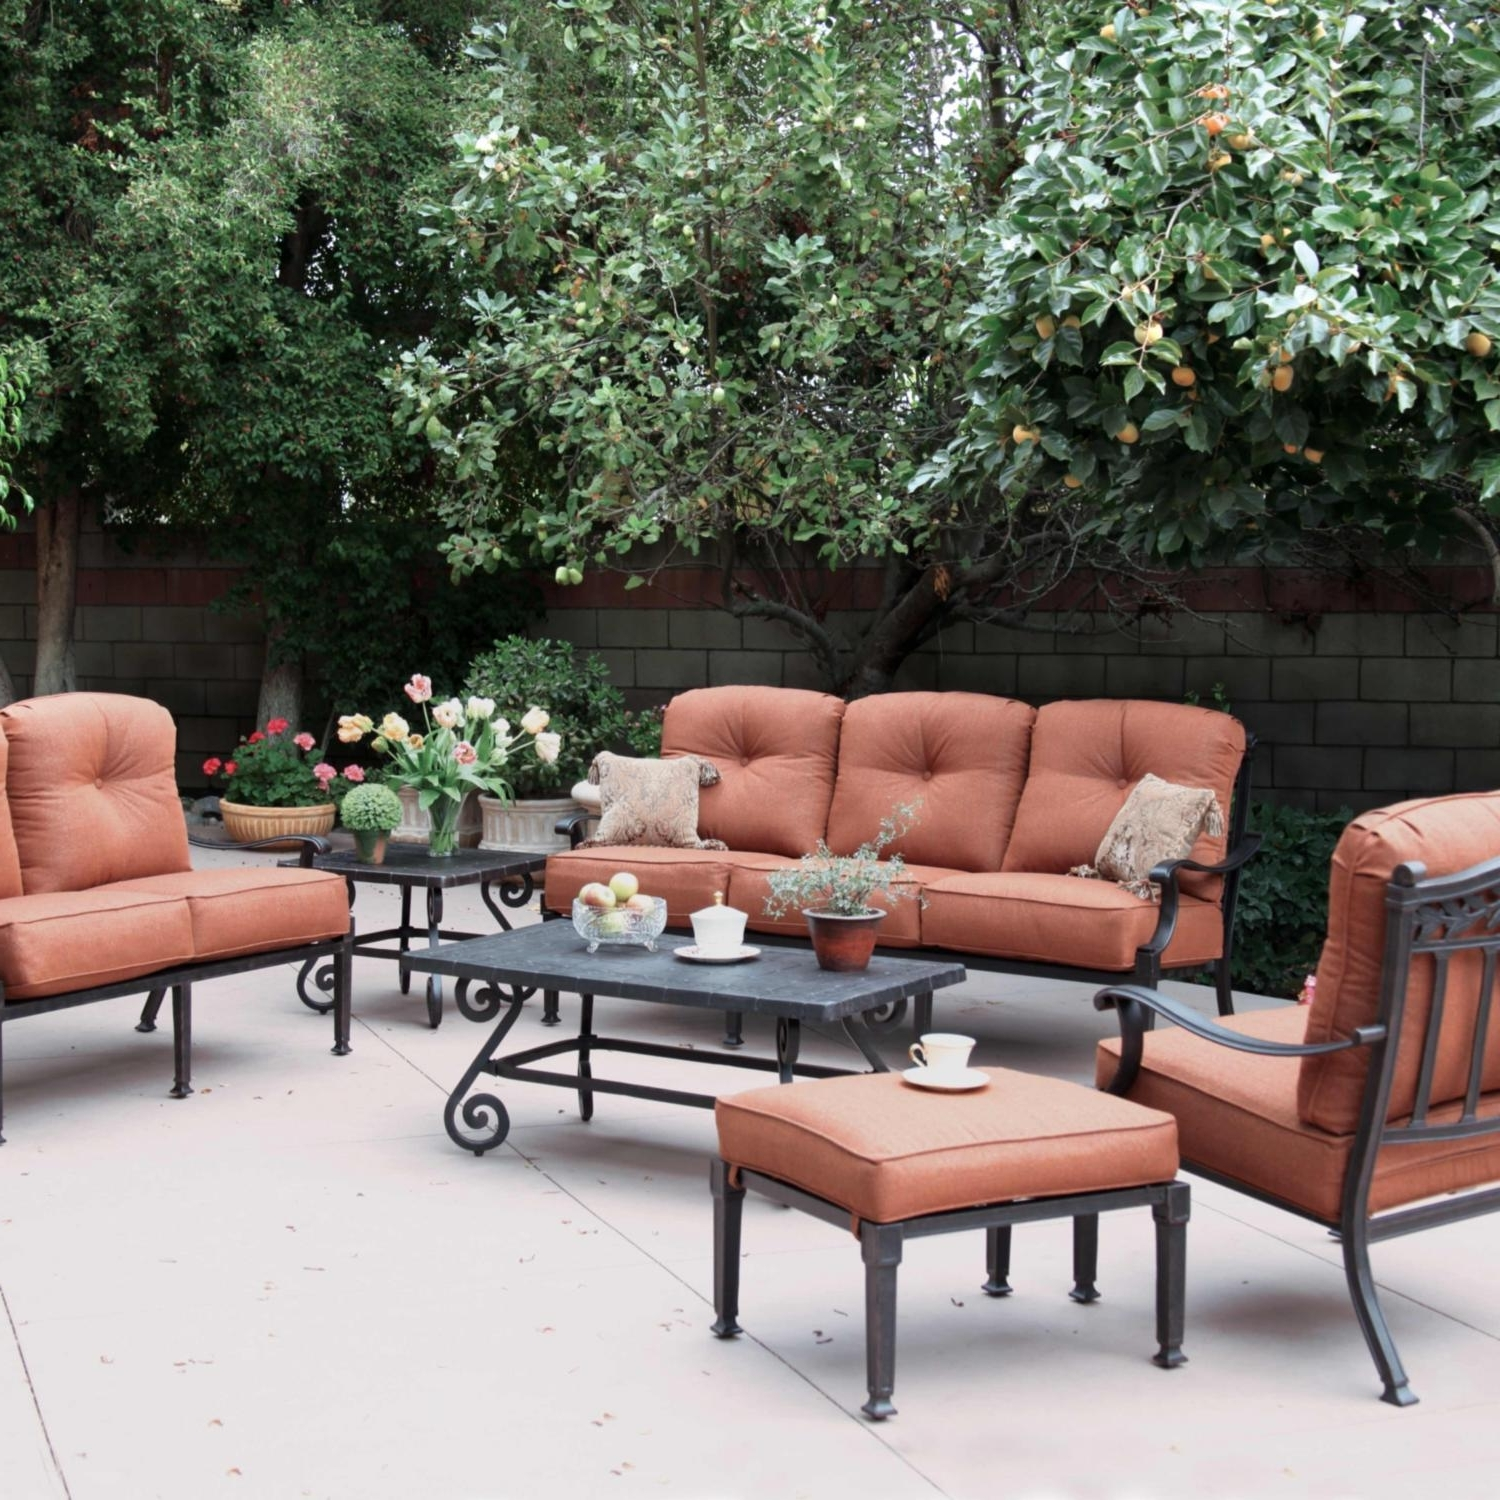 Patio Conversation Sets For Small Spaces In 2019 Metal Patio Conversation Sets For Small Spaces Cast Aluminum — The (View 8 of 20)